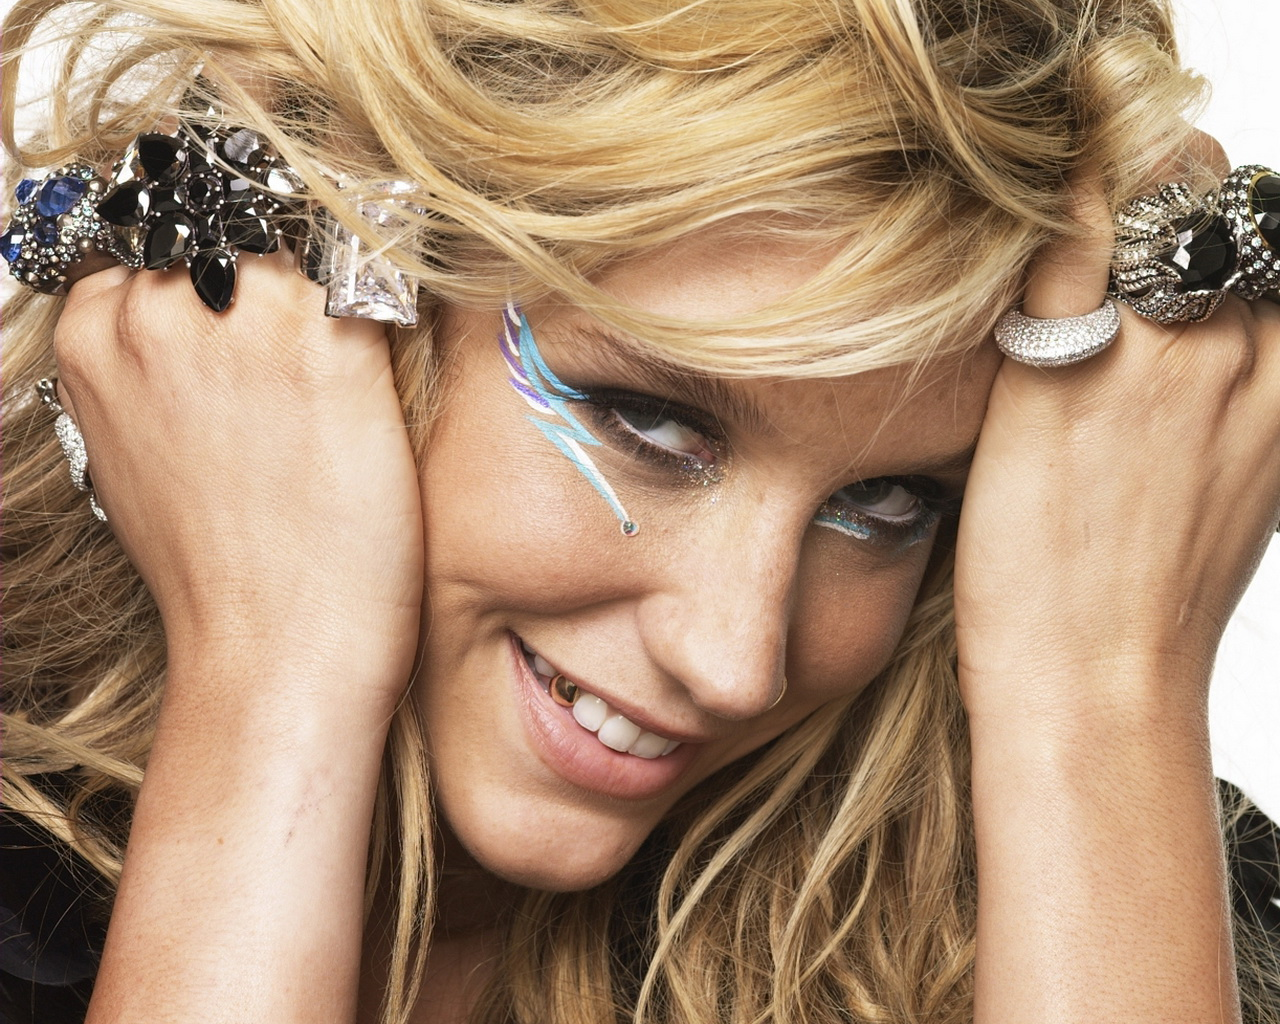 At the end of last year, Kesha filed a lawsuit against her producer Dr. Luke. She claims that the music producer, Lukasz Sebastian Gottwald, emotionally, ...